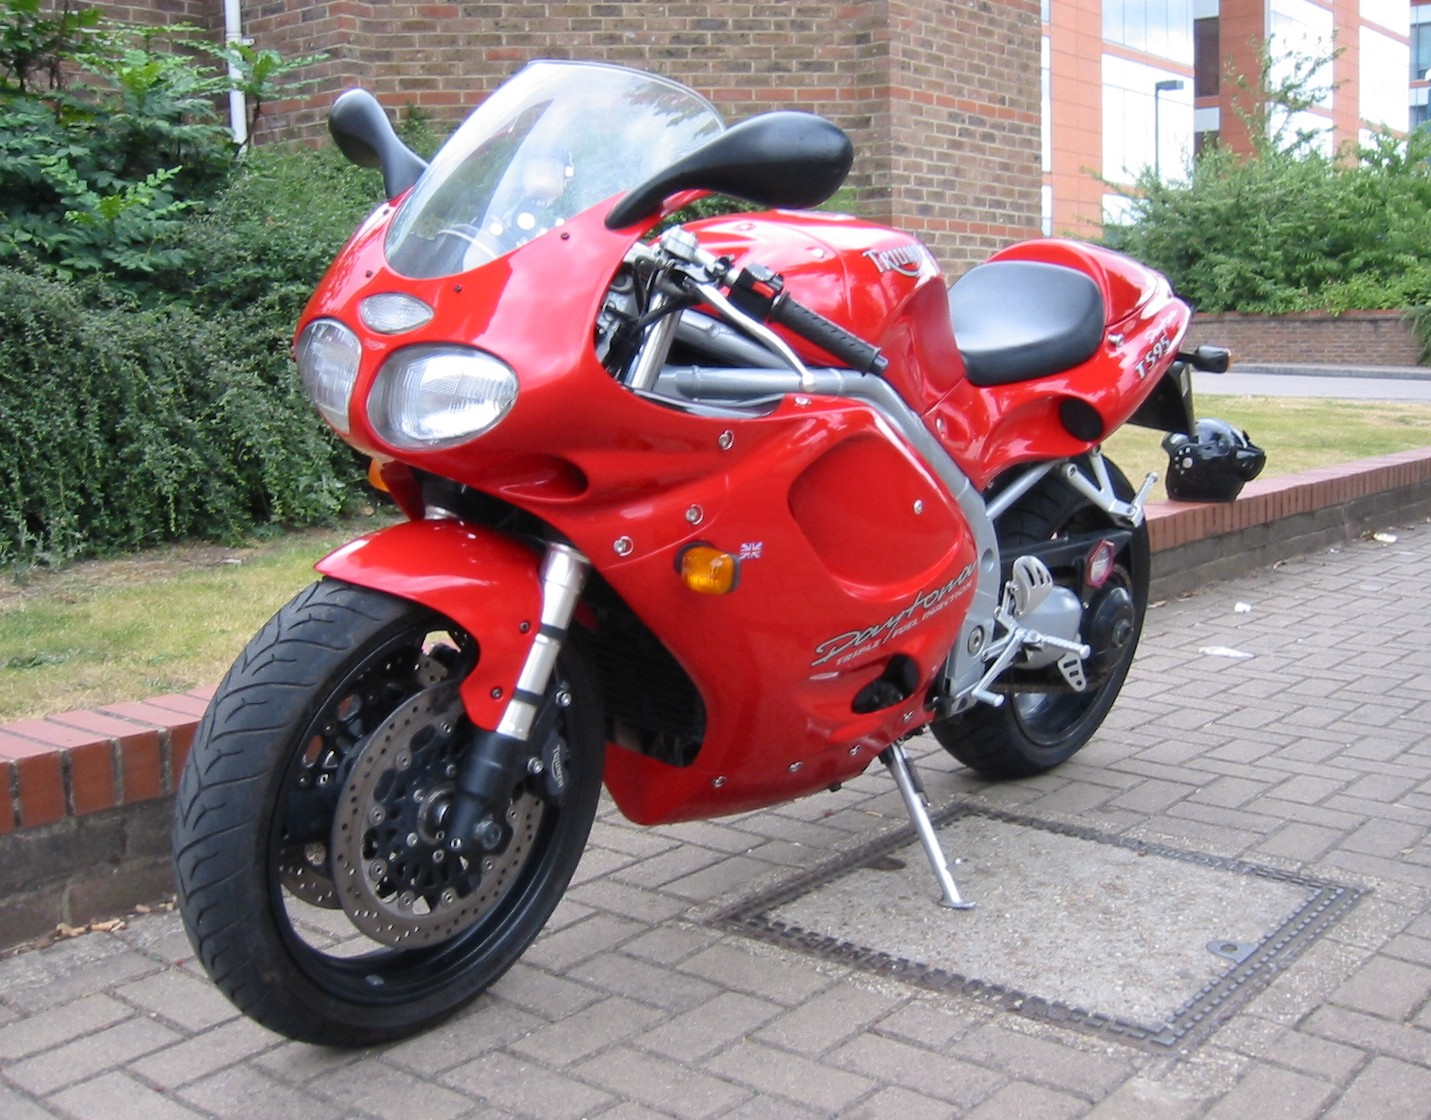 TRIUMPH DAYTONA T595 red